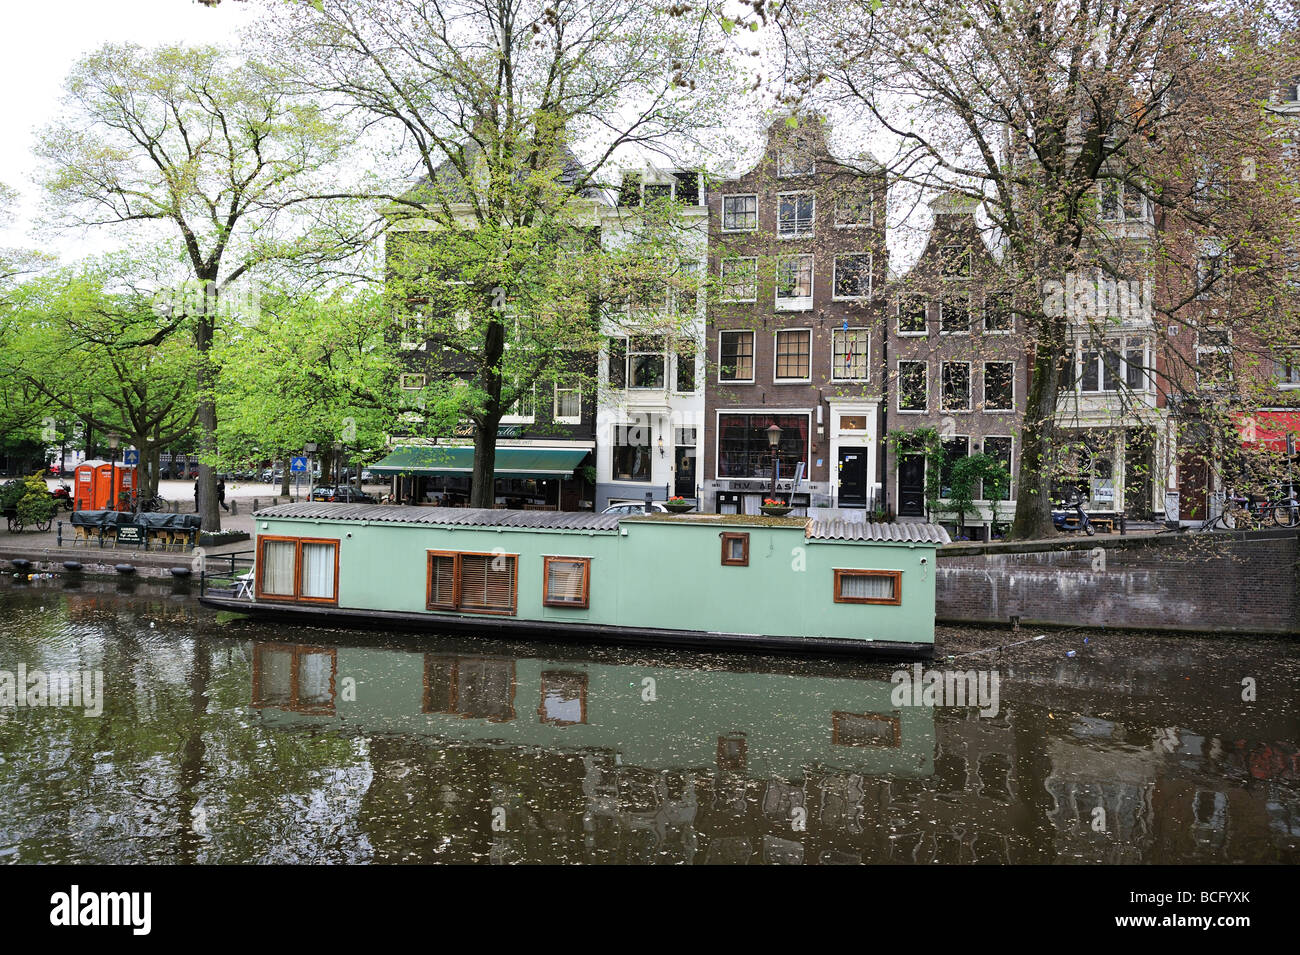 Green house boat opposite cafe Marcella at the Amstelveld in Amsterdam - Stock Image